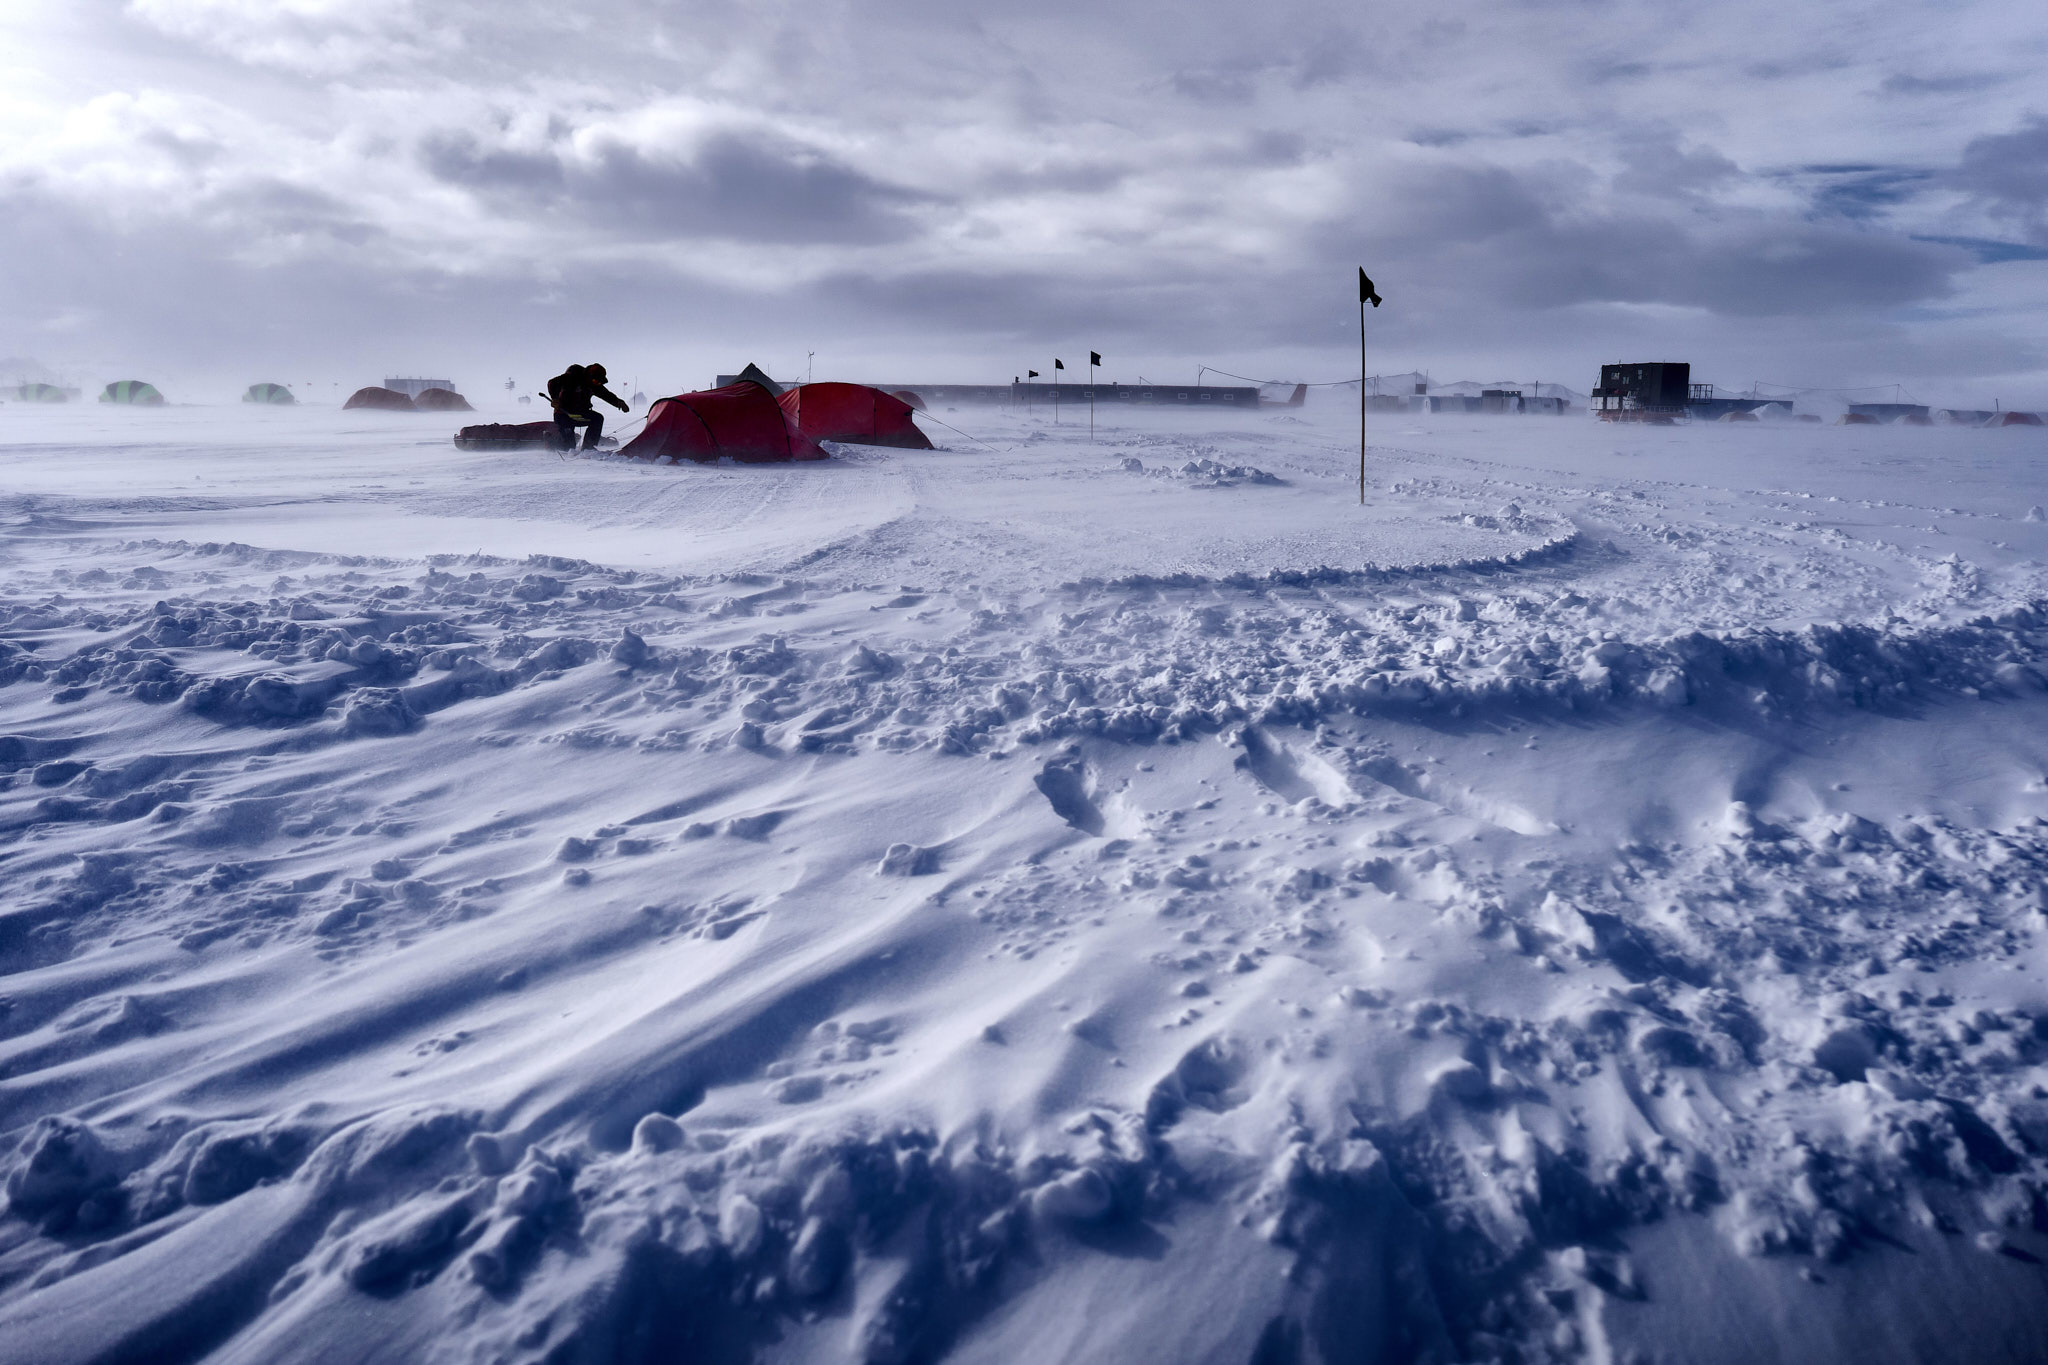 A windy day in Union Glacier camp